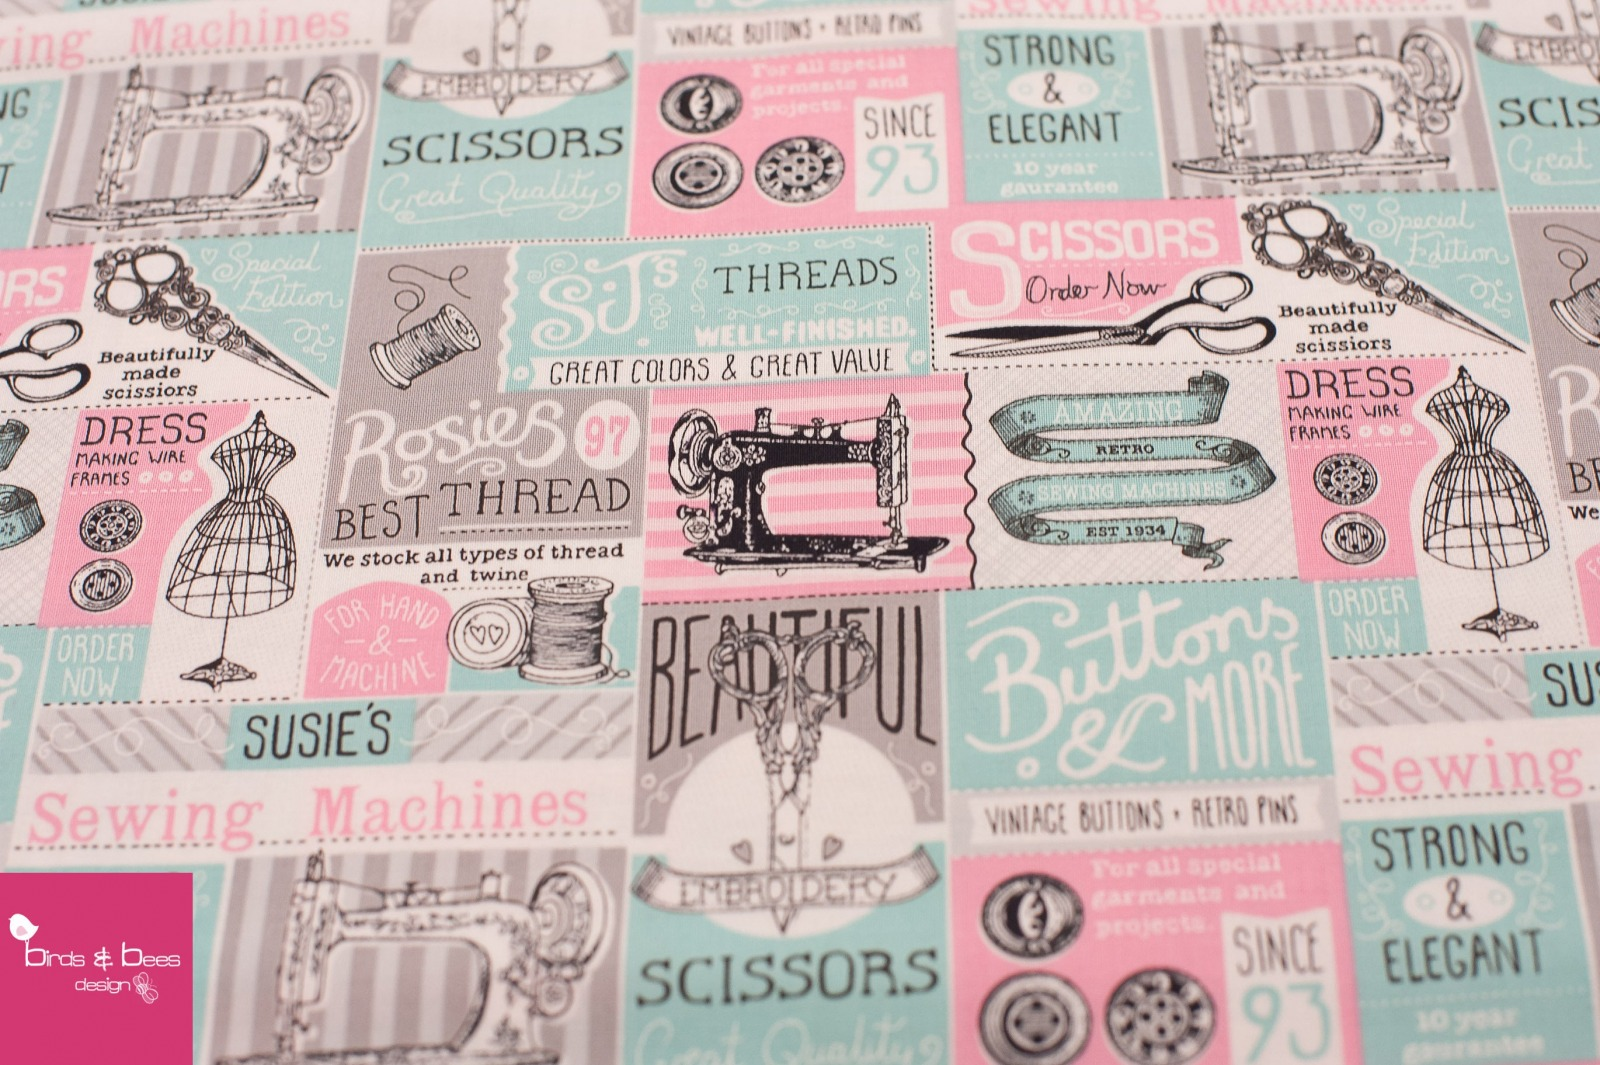 VINTAGE SEWING PATCH by Timeless Treasures